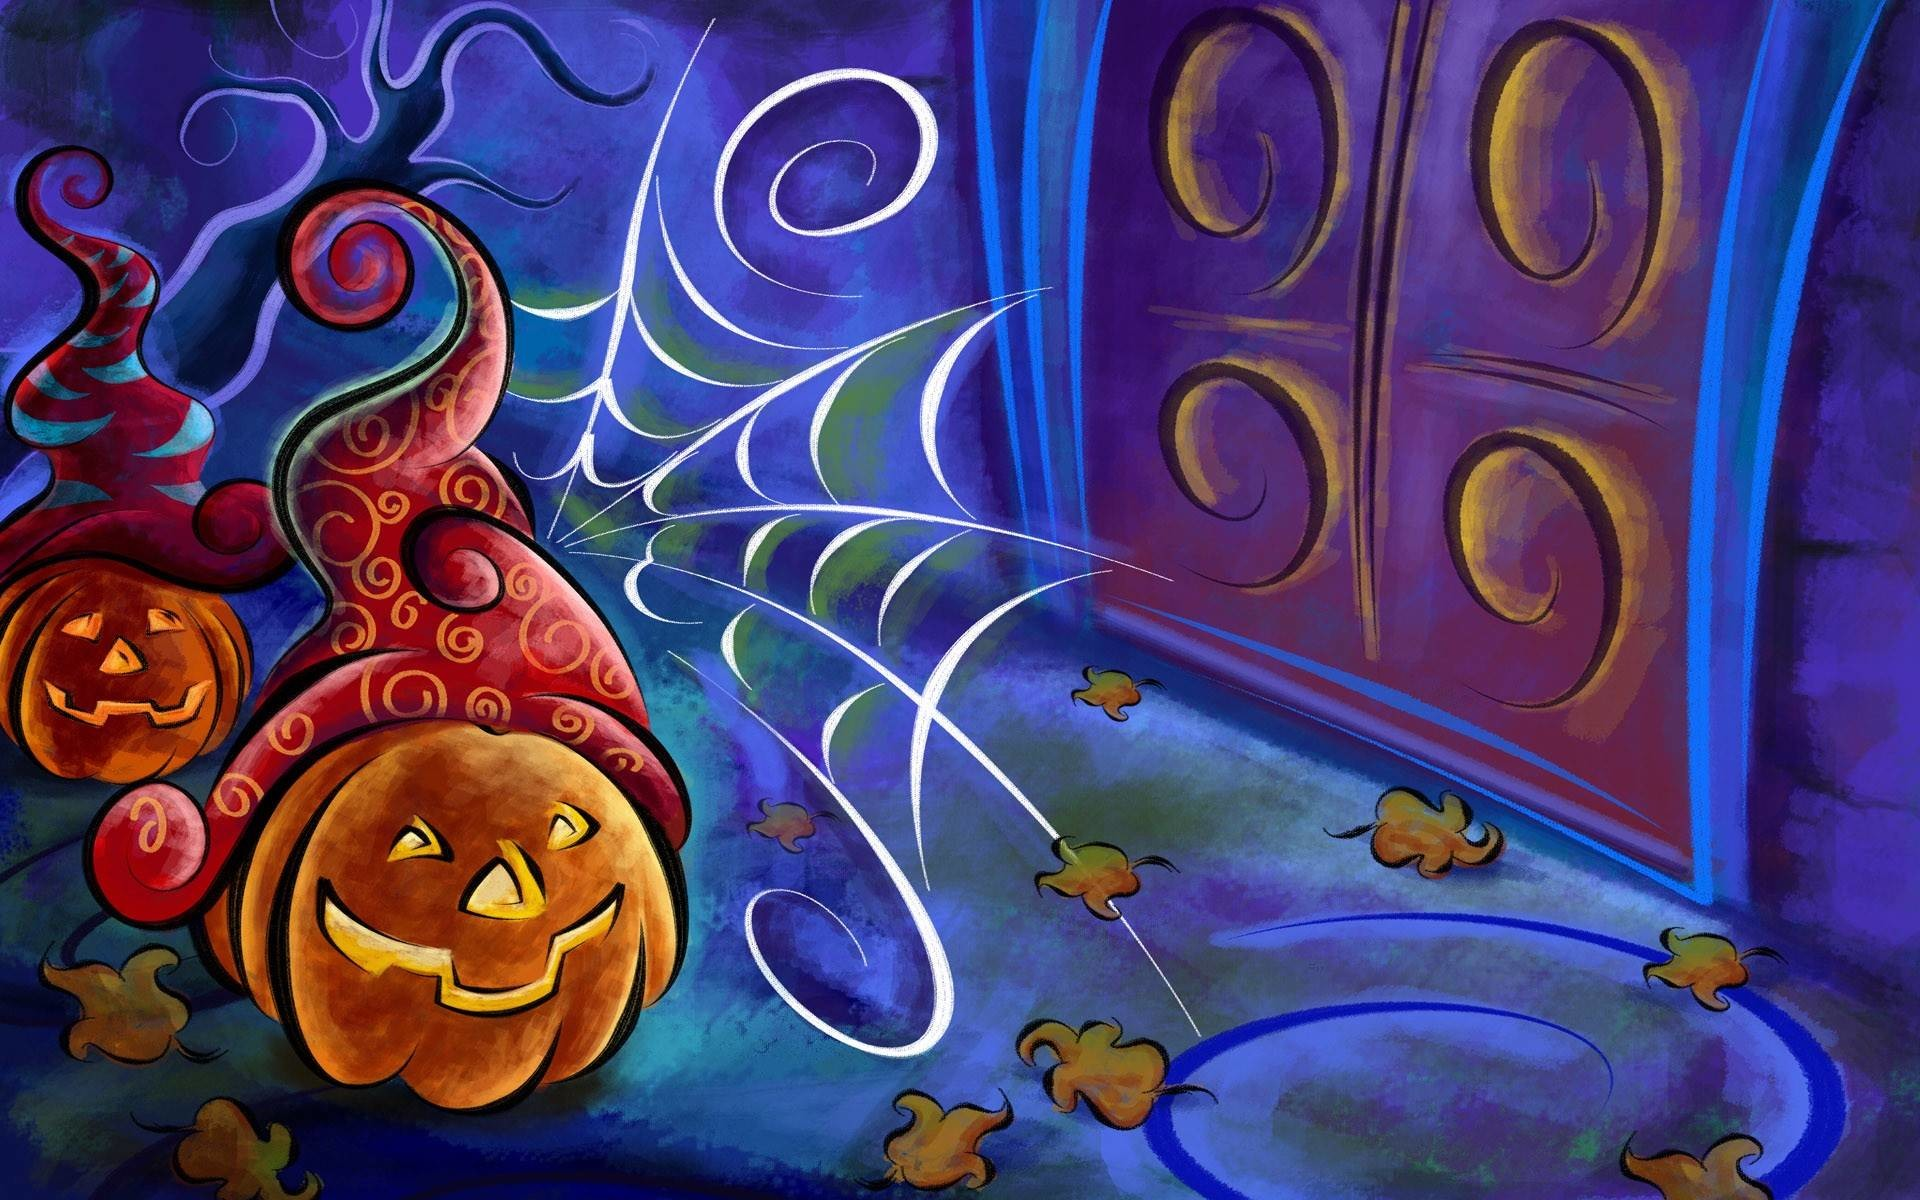 1920x1200 Halloween Wallpapers Screensavers - Wallpaper Cave. Halloween Wallpapers  Screensavers Wallpaper Cave